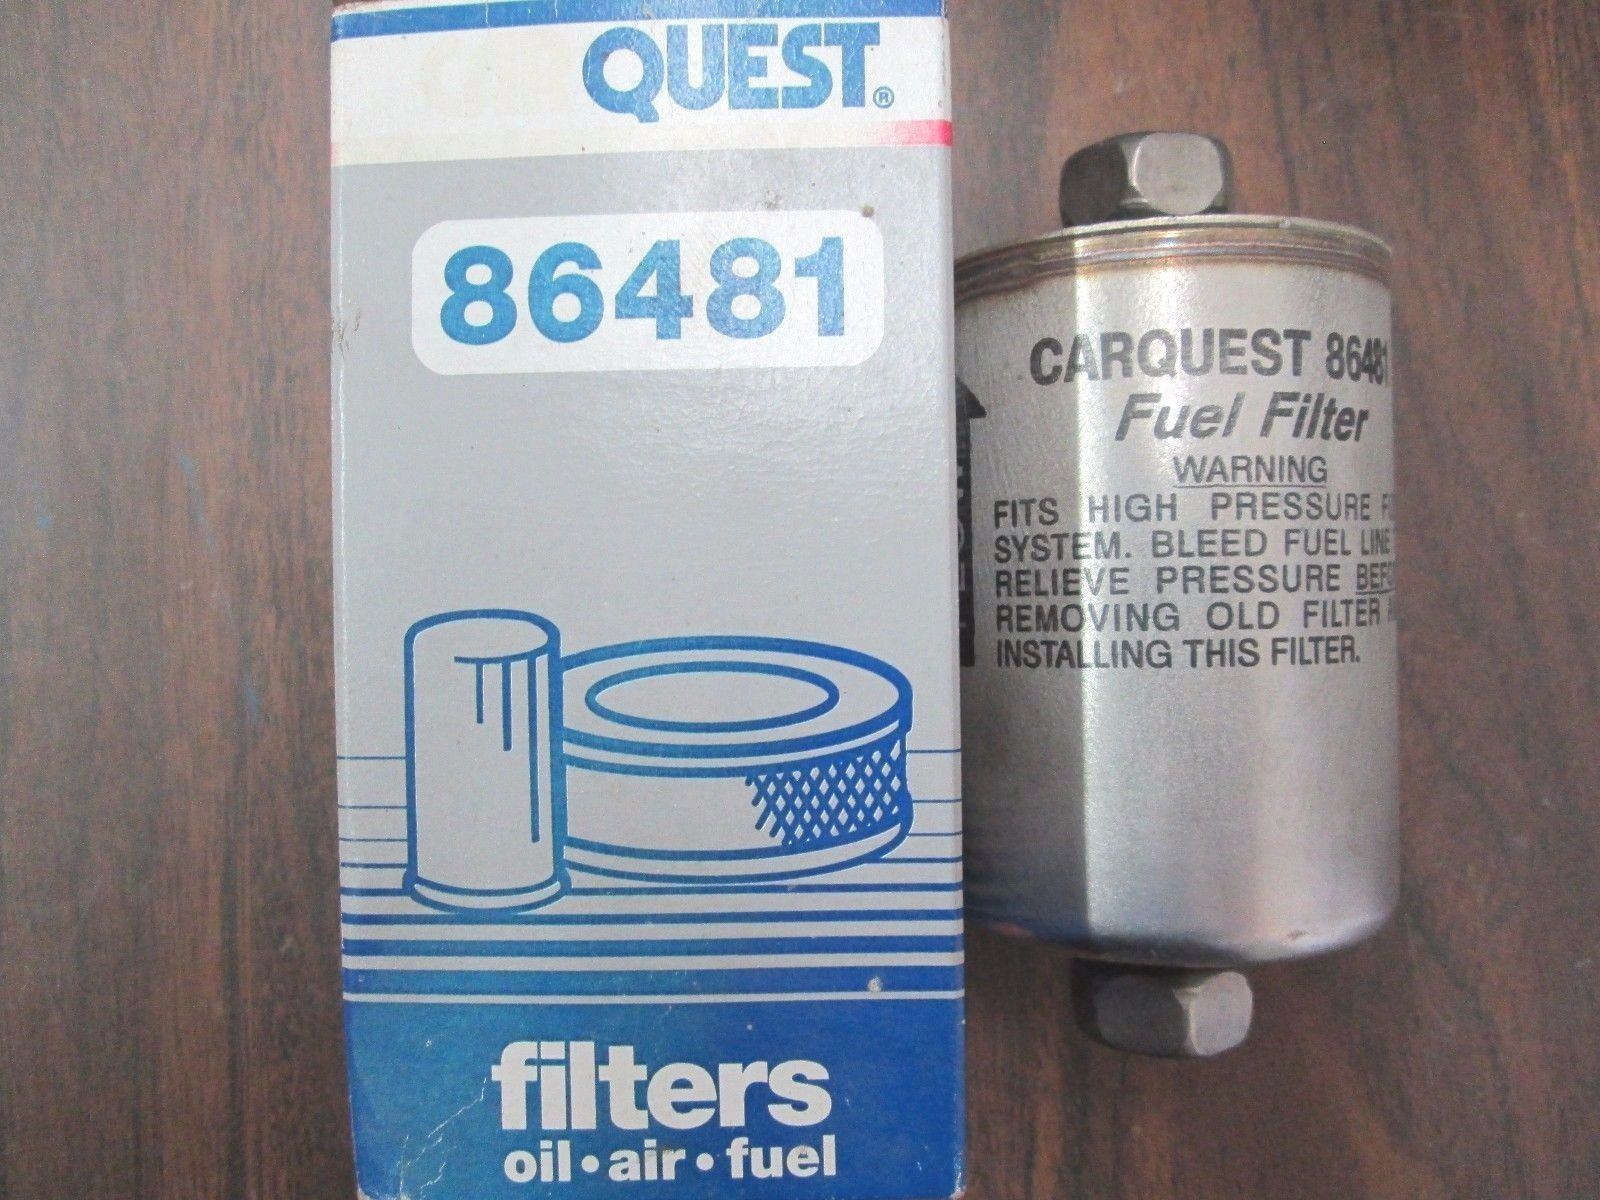 Primary image for 86481, Carquest, Filter